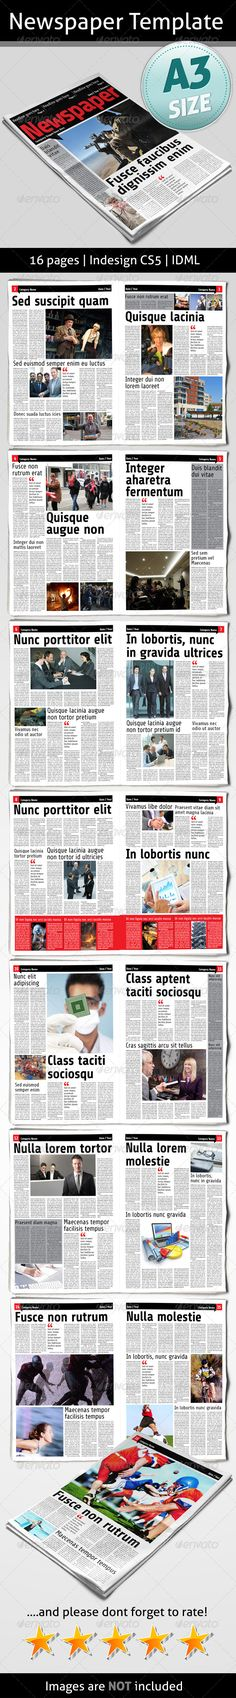 Newspaper Template #GraphicRiver 16 pages A3 11.6929×16.5354 Bleed 5 mm InDesign CS5 Idml CMYK Aller: .fontsquirrel /fonts/Aller share: .fontsquirrel /fonts/Share-Regular Info file included Images are not included If you need any help with your purchase please contact me Created: 15August13 GraphicsFilesIncluded: JPGImage #InDesignINDD Layered: Yes MinimumAdobeCSVersion: CS4 PrintDimensions: 11.6929x16.5354 Tags: 16pages #colorspace #creative #daily #generalinterest #layout #modern…